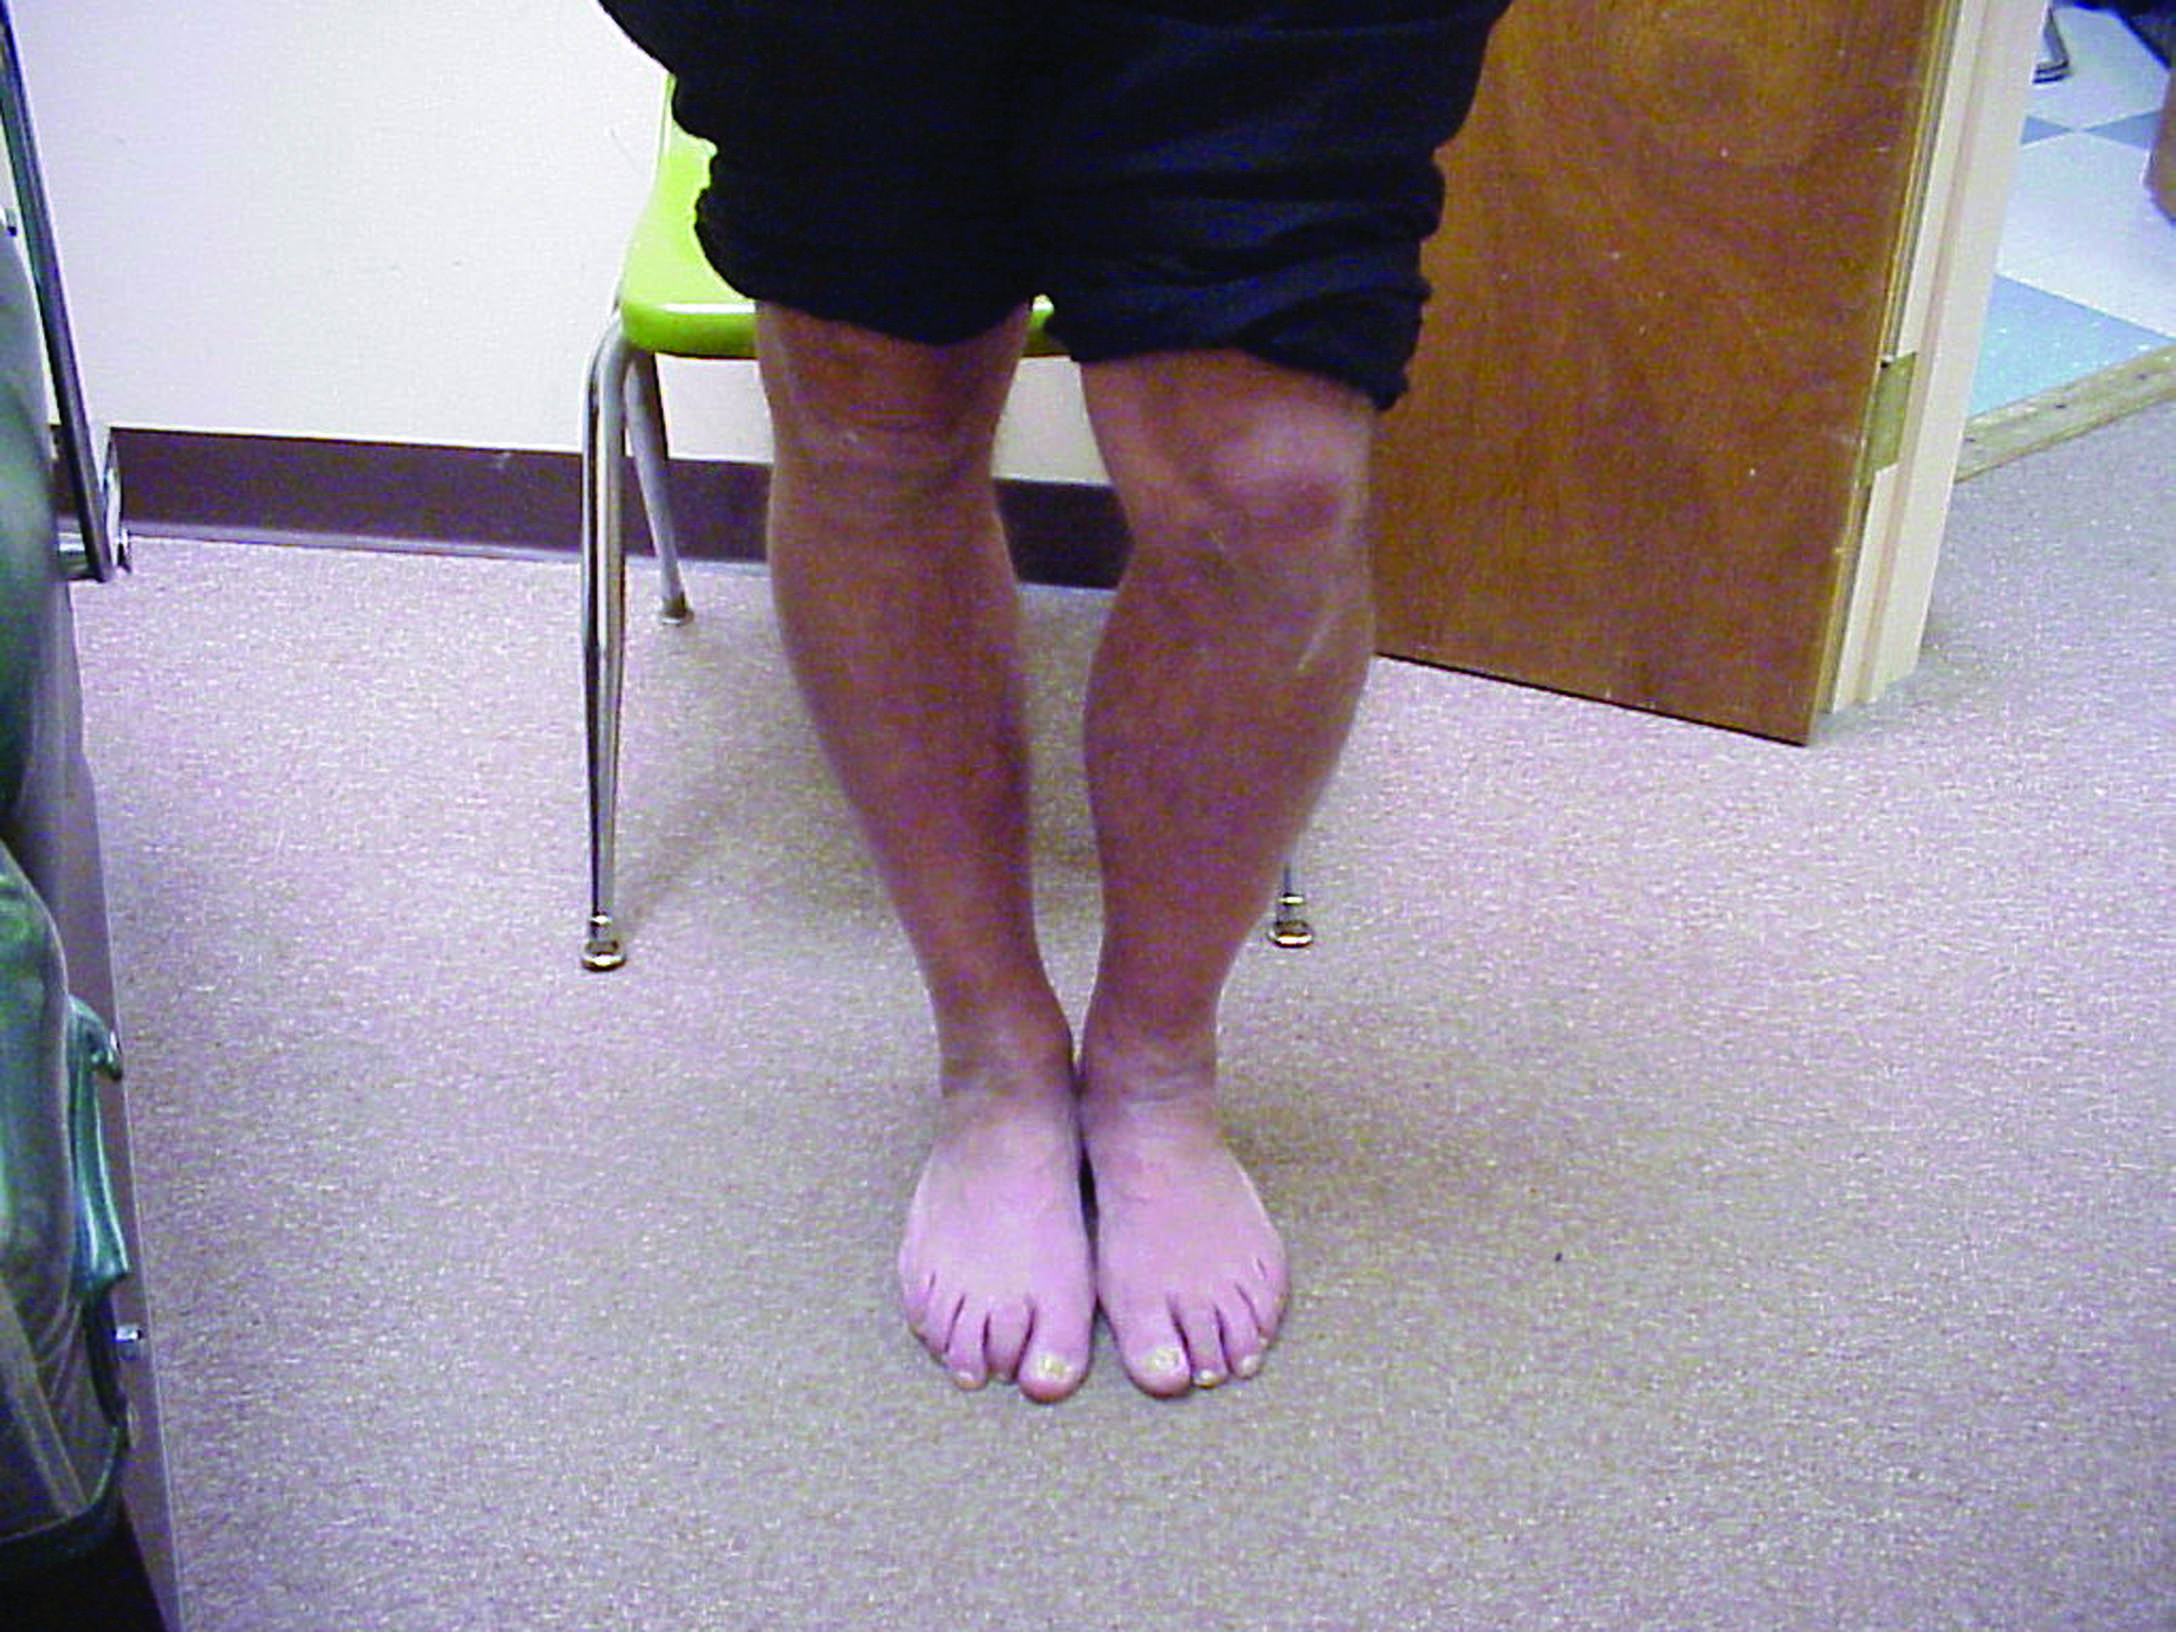 Here one can see a leg length discrepancy. For symptomatic cases, one can achieve good outcomes by adding a heel lift to the rearfoot post of an orthotic device on the shorter limb, according to Dianne Mitchell-Pray, DPM. In regard to materials, she uses either high durometer EVA or Korex, adding that both materials retain their shape well. (Photo courtesy of David Levine, DPM, CPed)